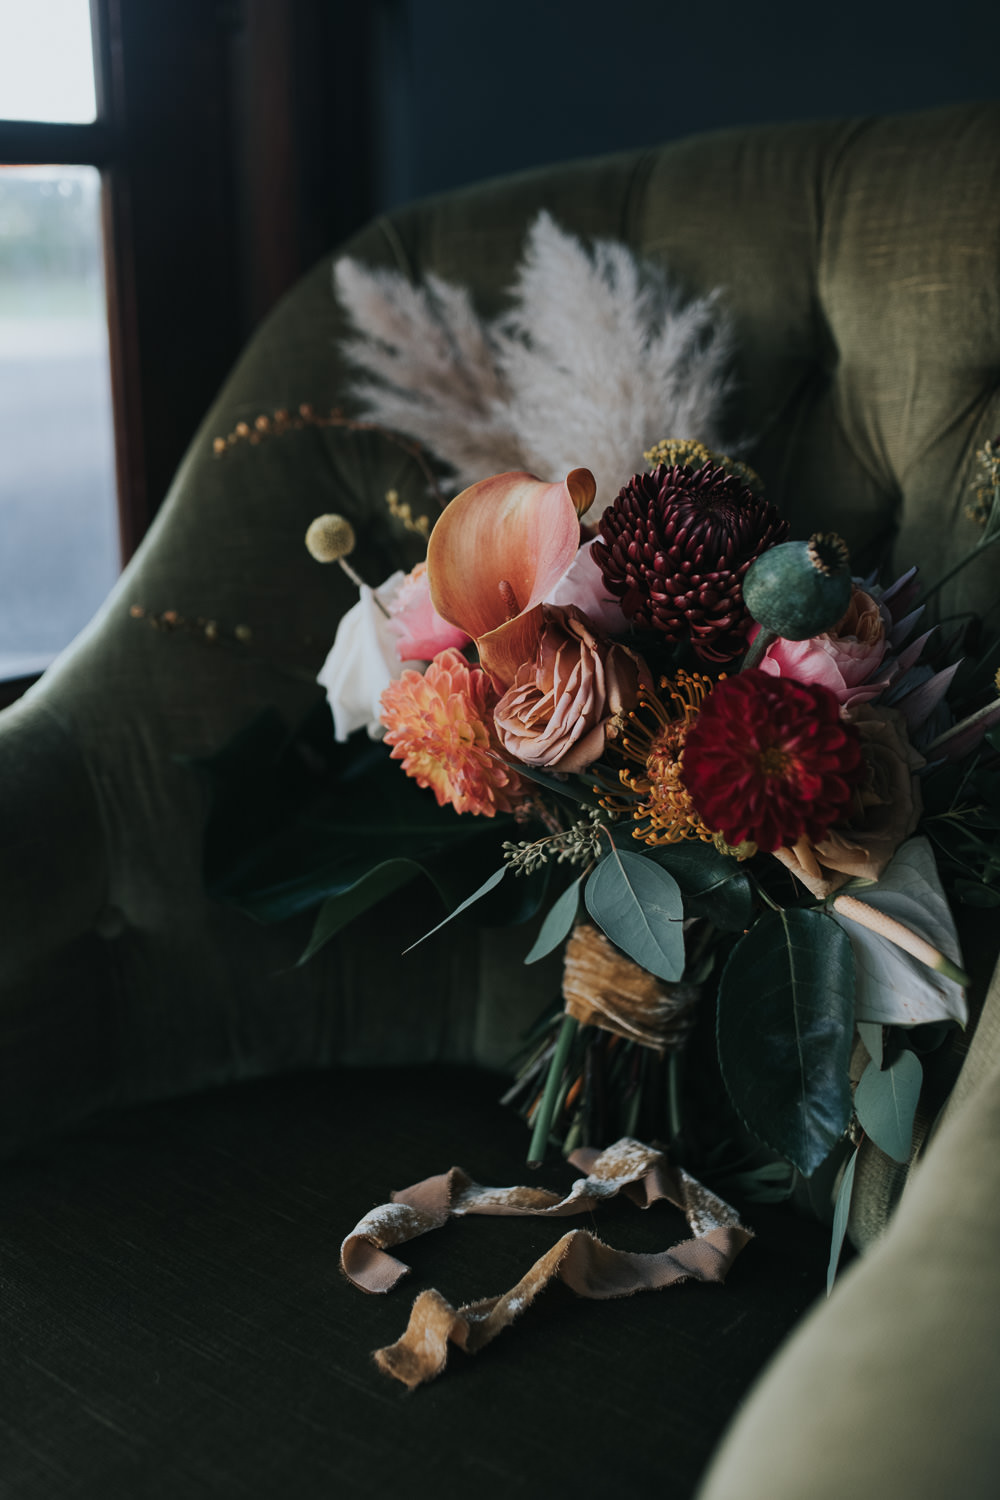 Bouquet Flowers Bride Bridal Mustard Tan Orange Burgundy Calla Lily Pampas Grass Dahlia Chrysanthemum 1970 Retro Mid Century Wedding Ideas Laura Martha Photography